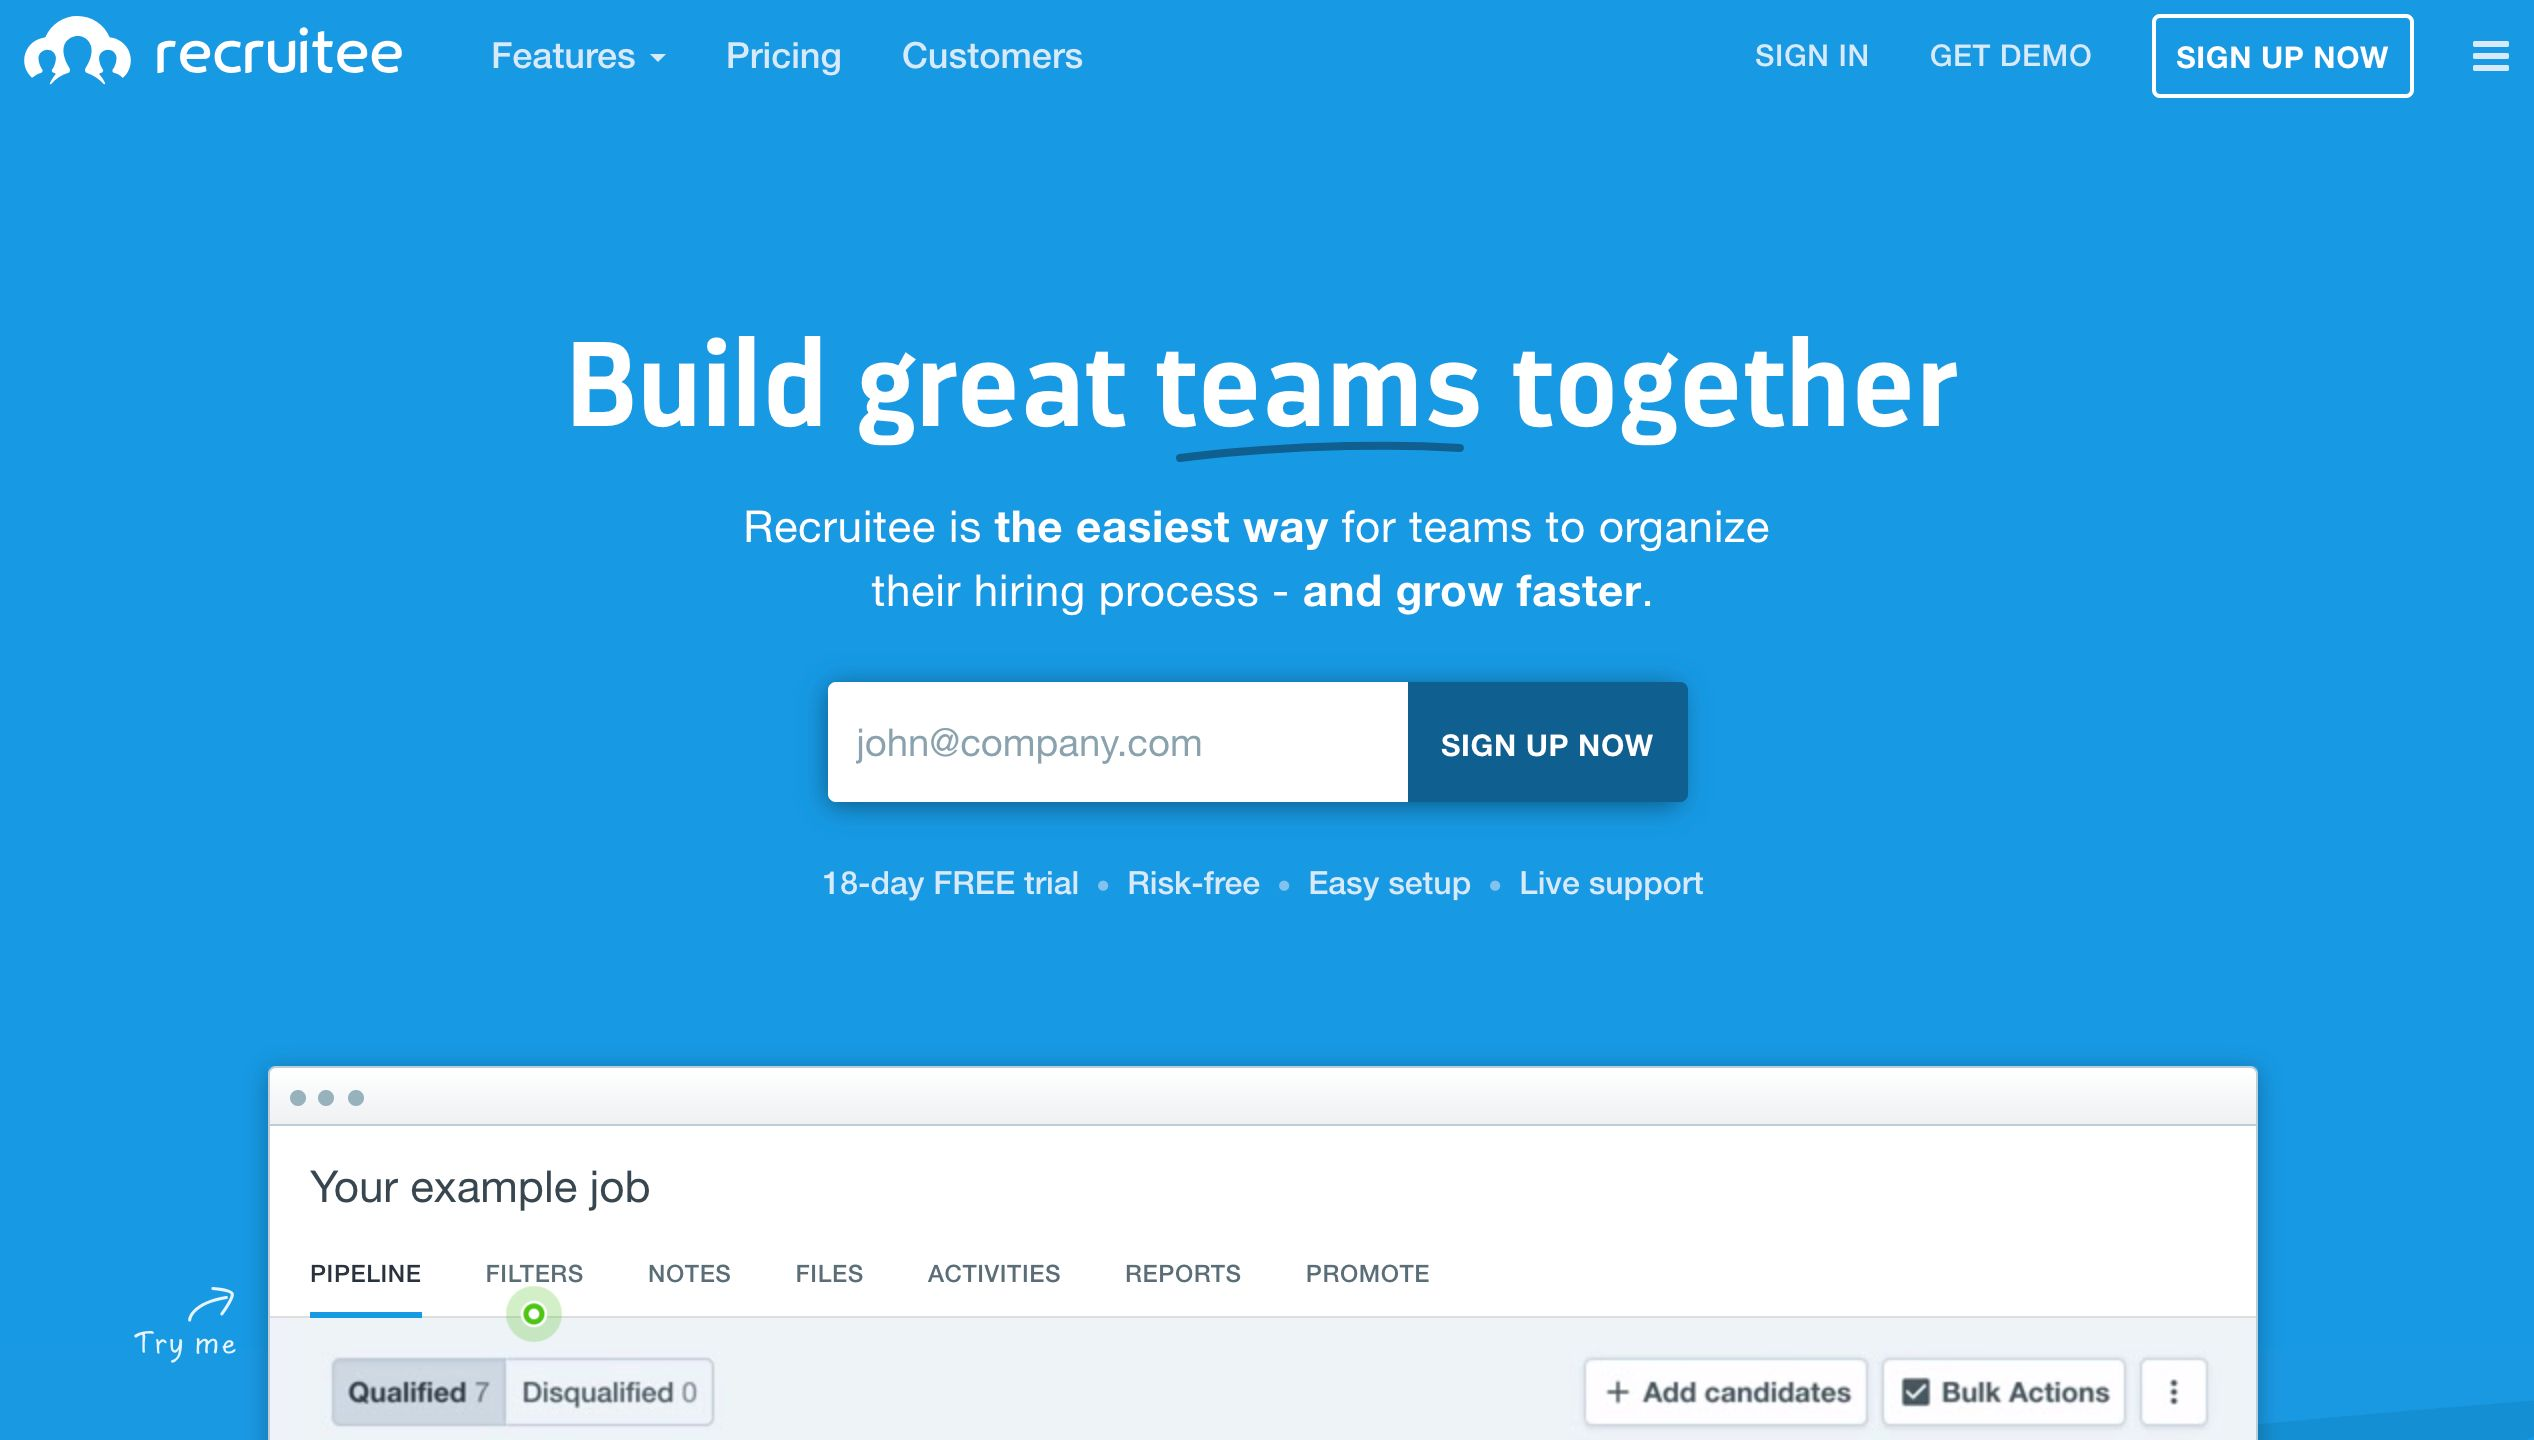 Recruitee home page